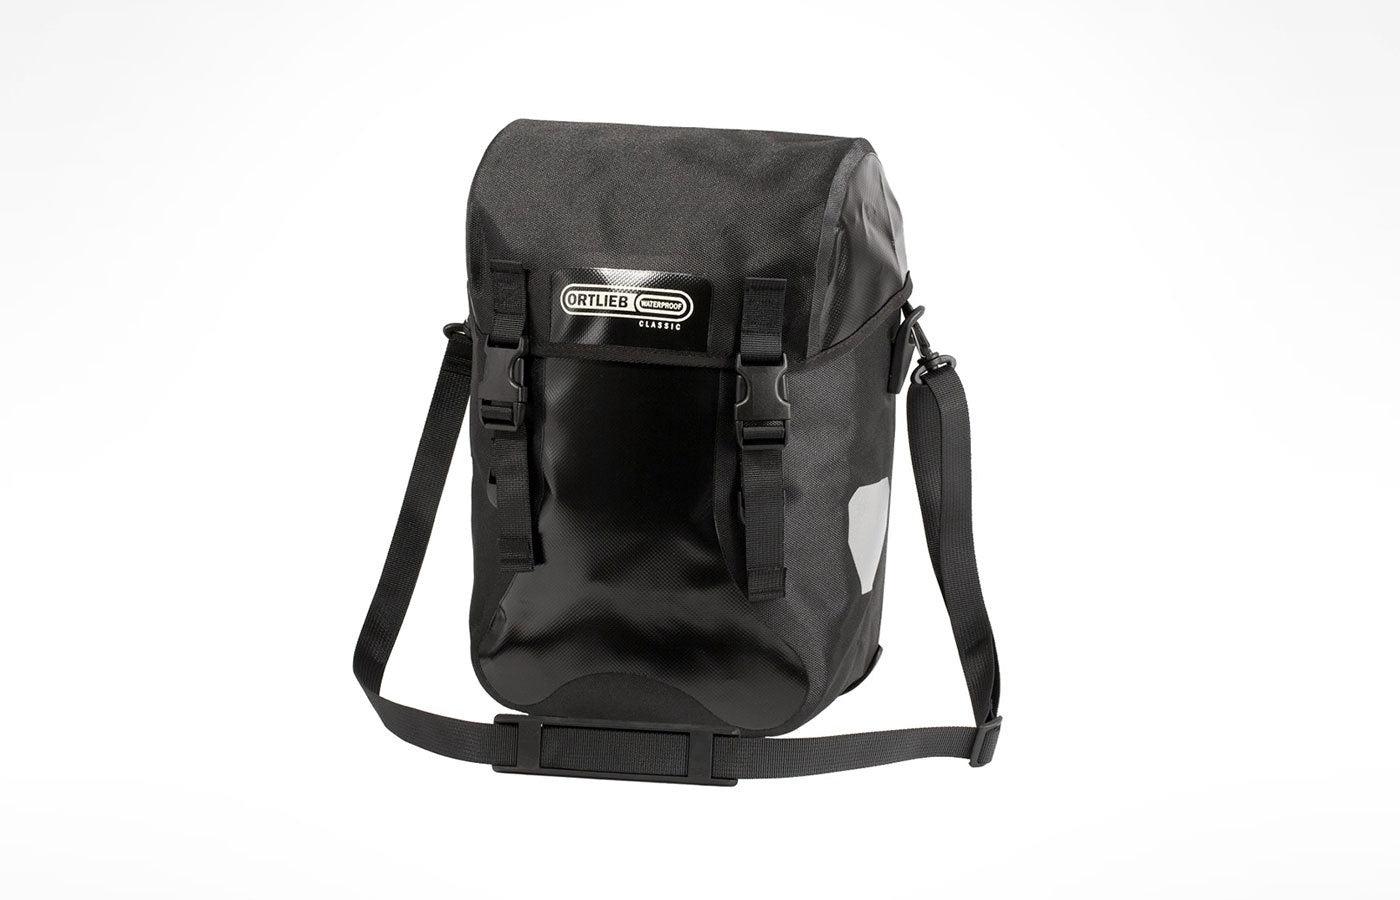 Ortlieb Sport-packer Classic Panniers (front)